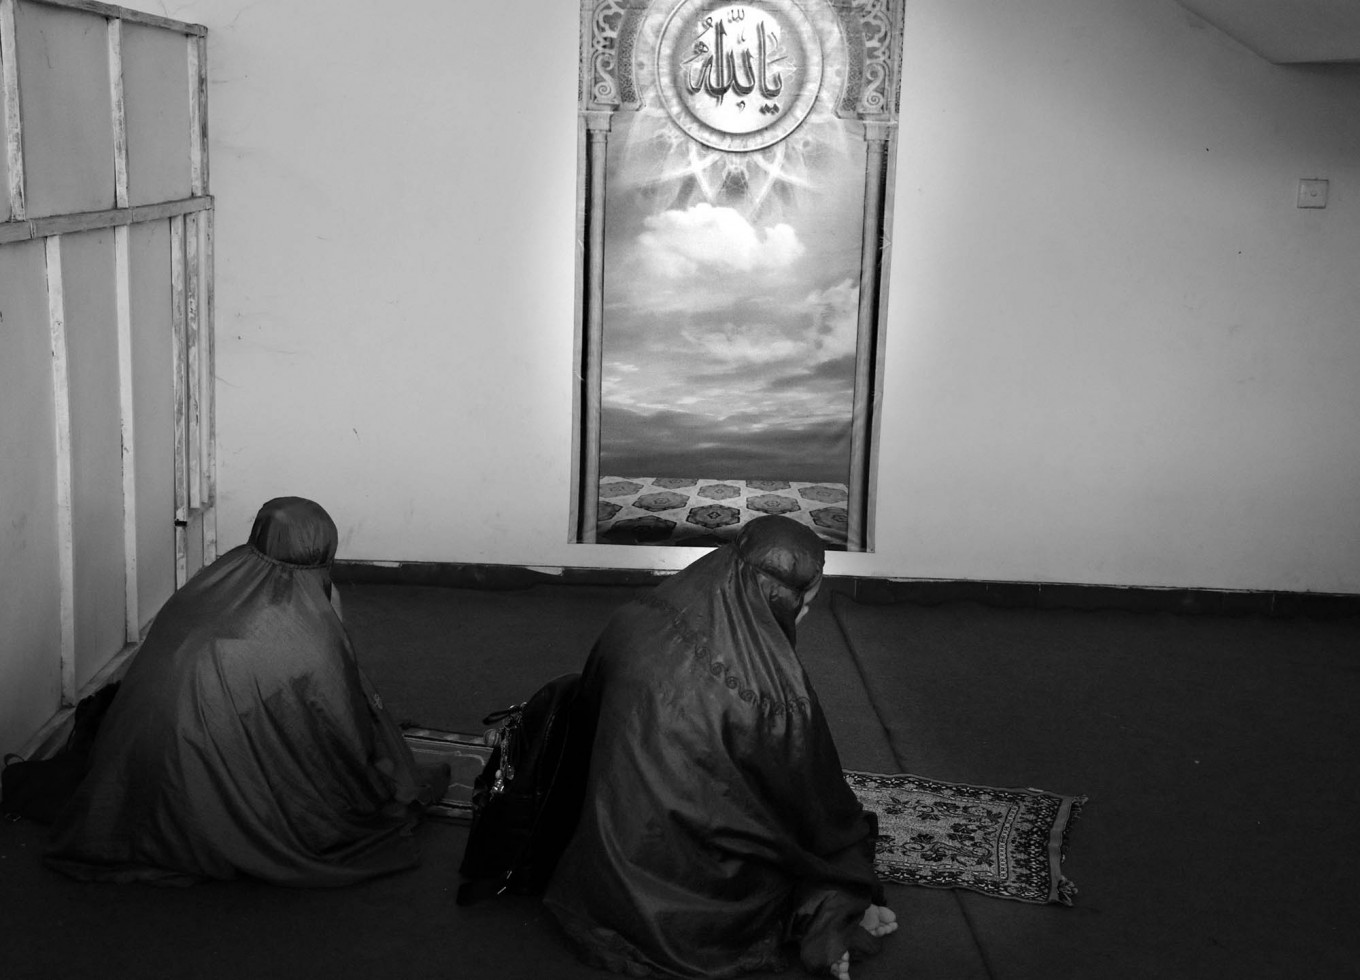 Two players pray in between matches during the 2017 Pro Liga in Ken Arok Indoor Stadium in Malang, East Java, on March 18. JP/Aman Rochman